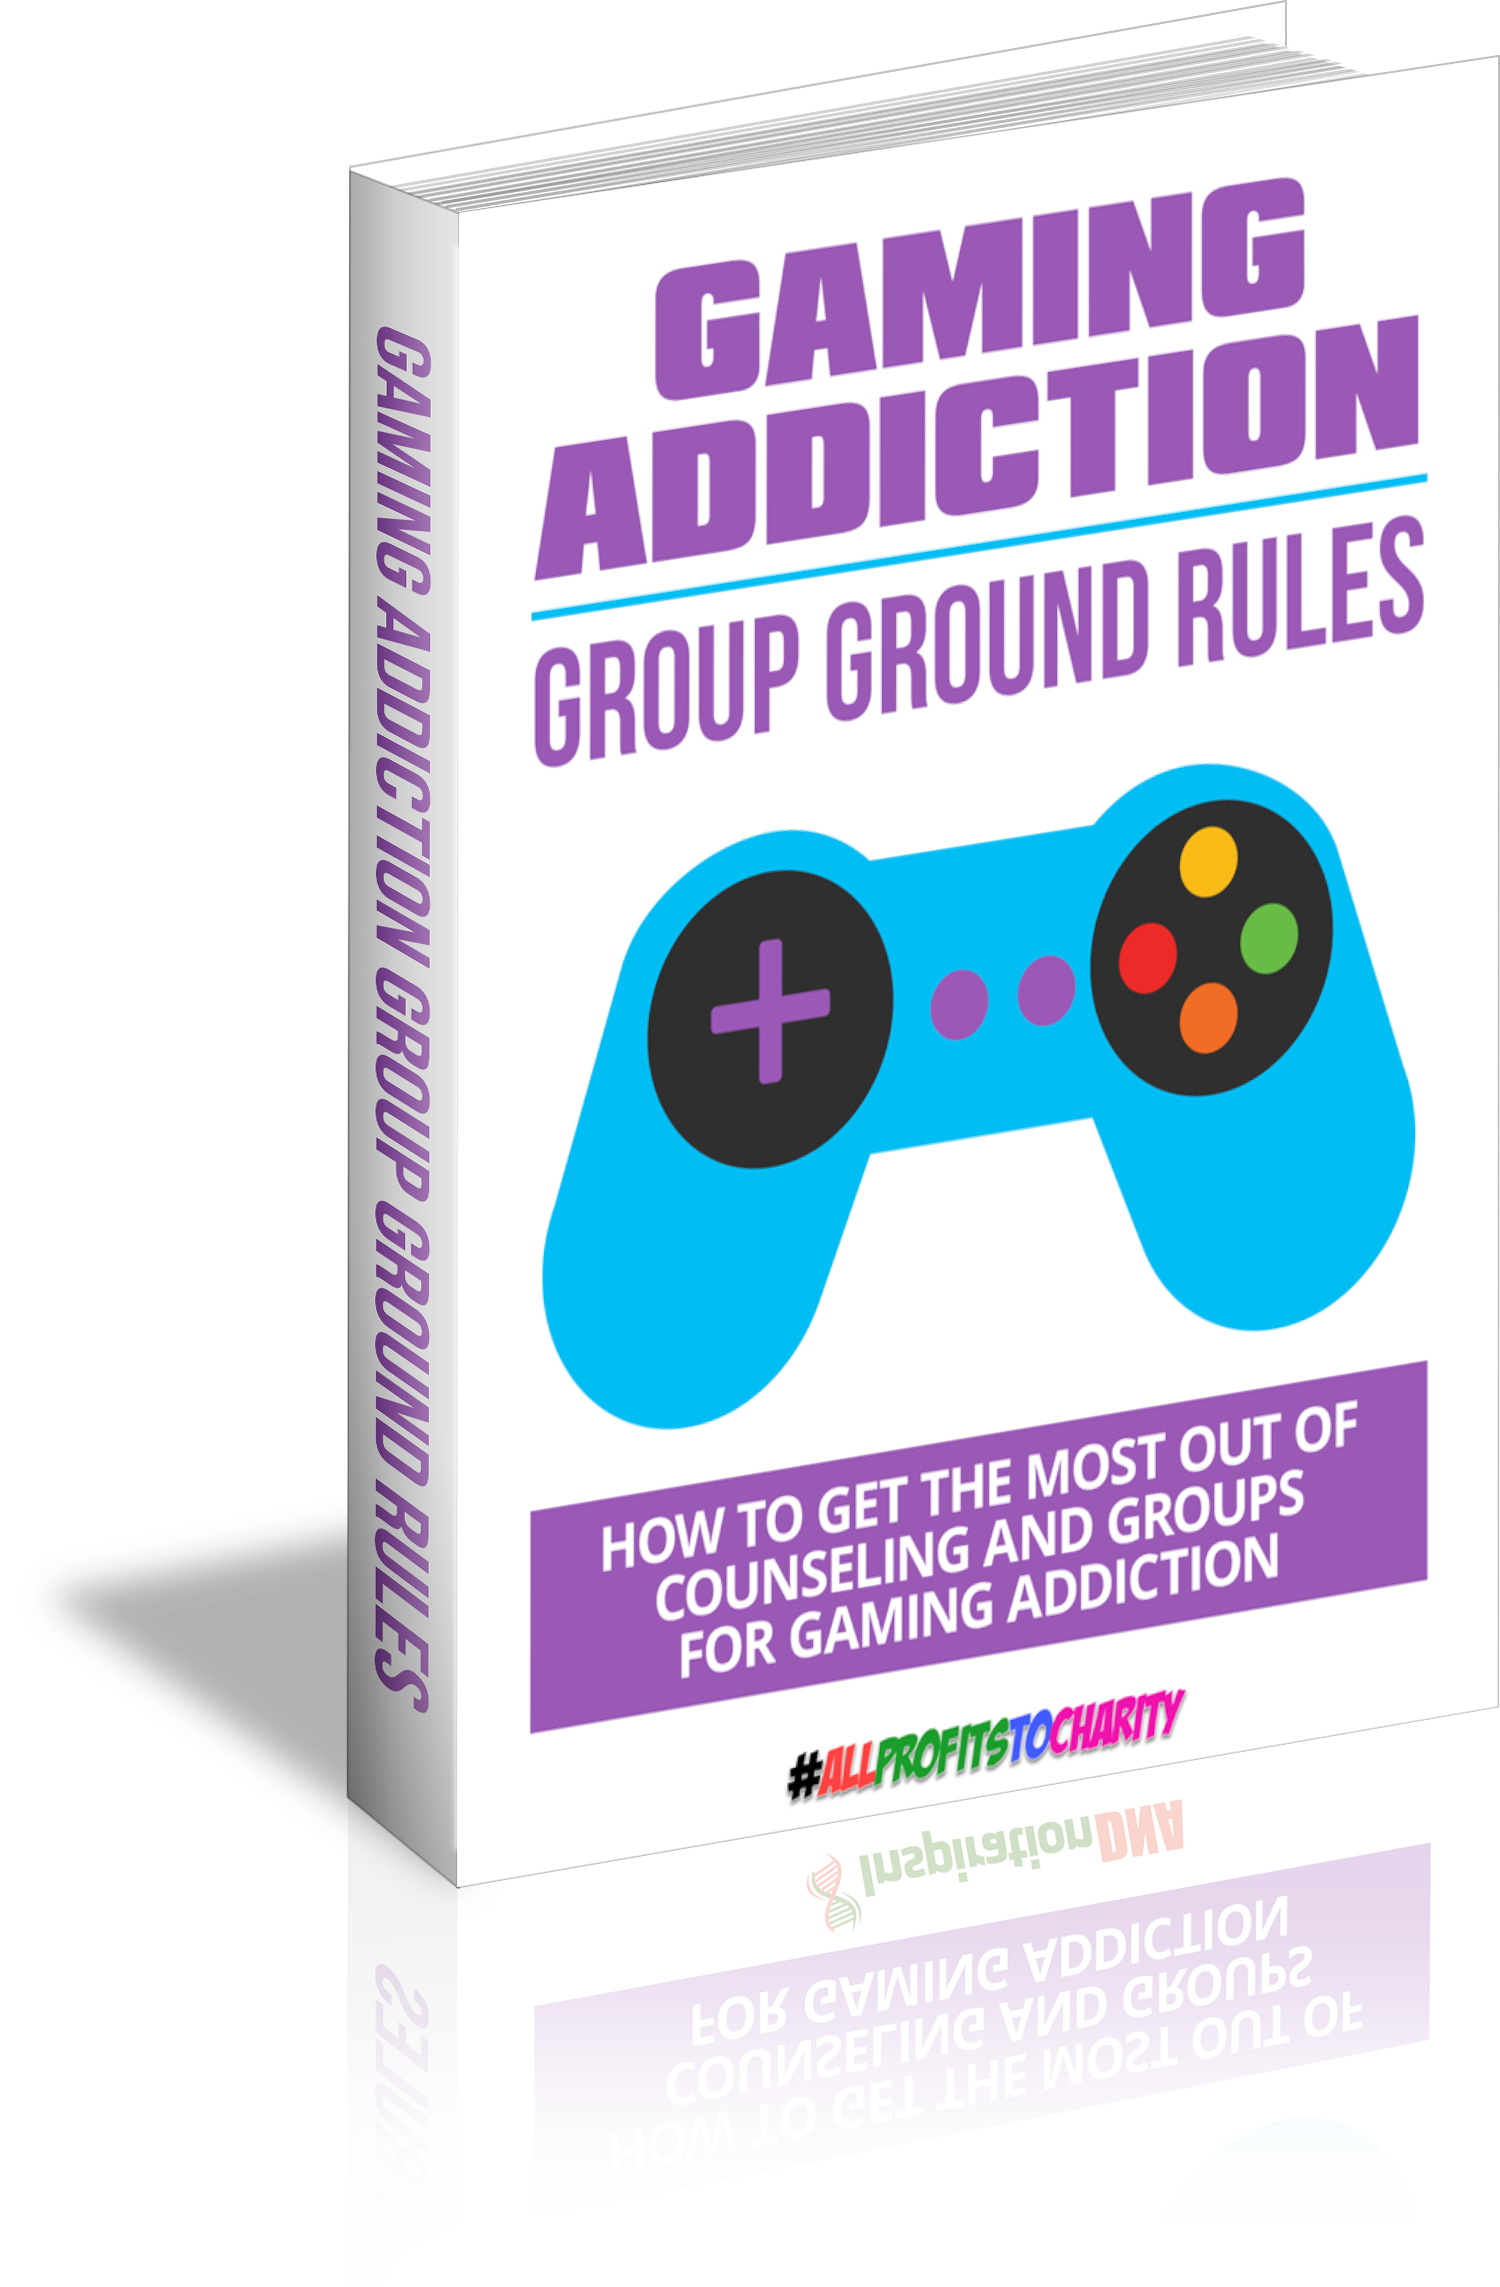 Gaming Addiction Group Ground Rules cover